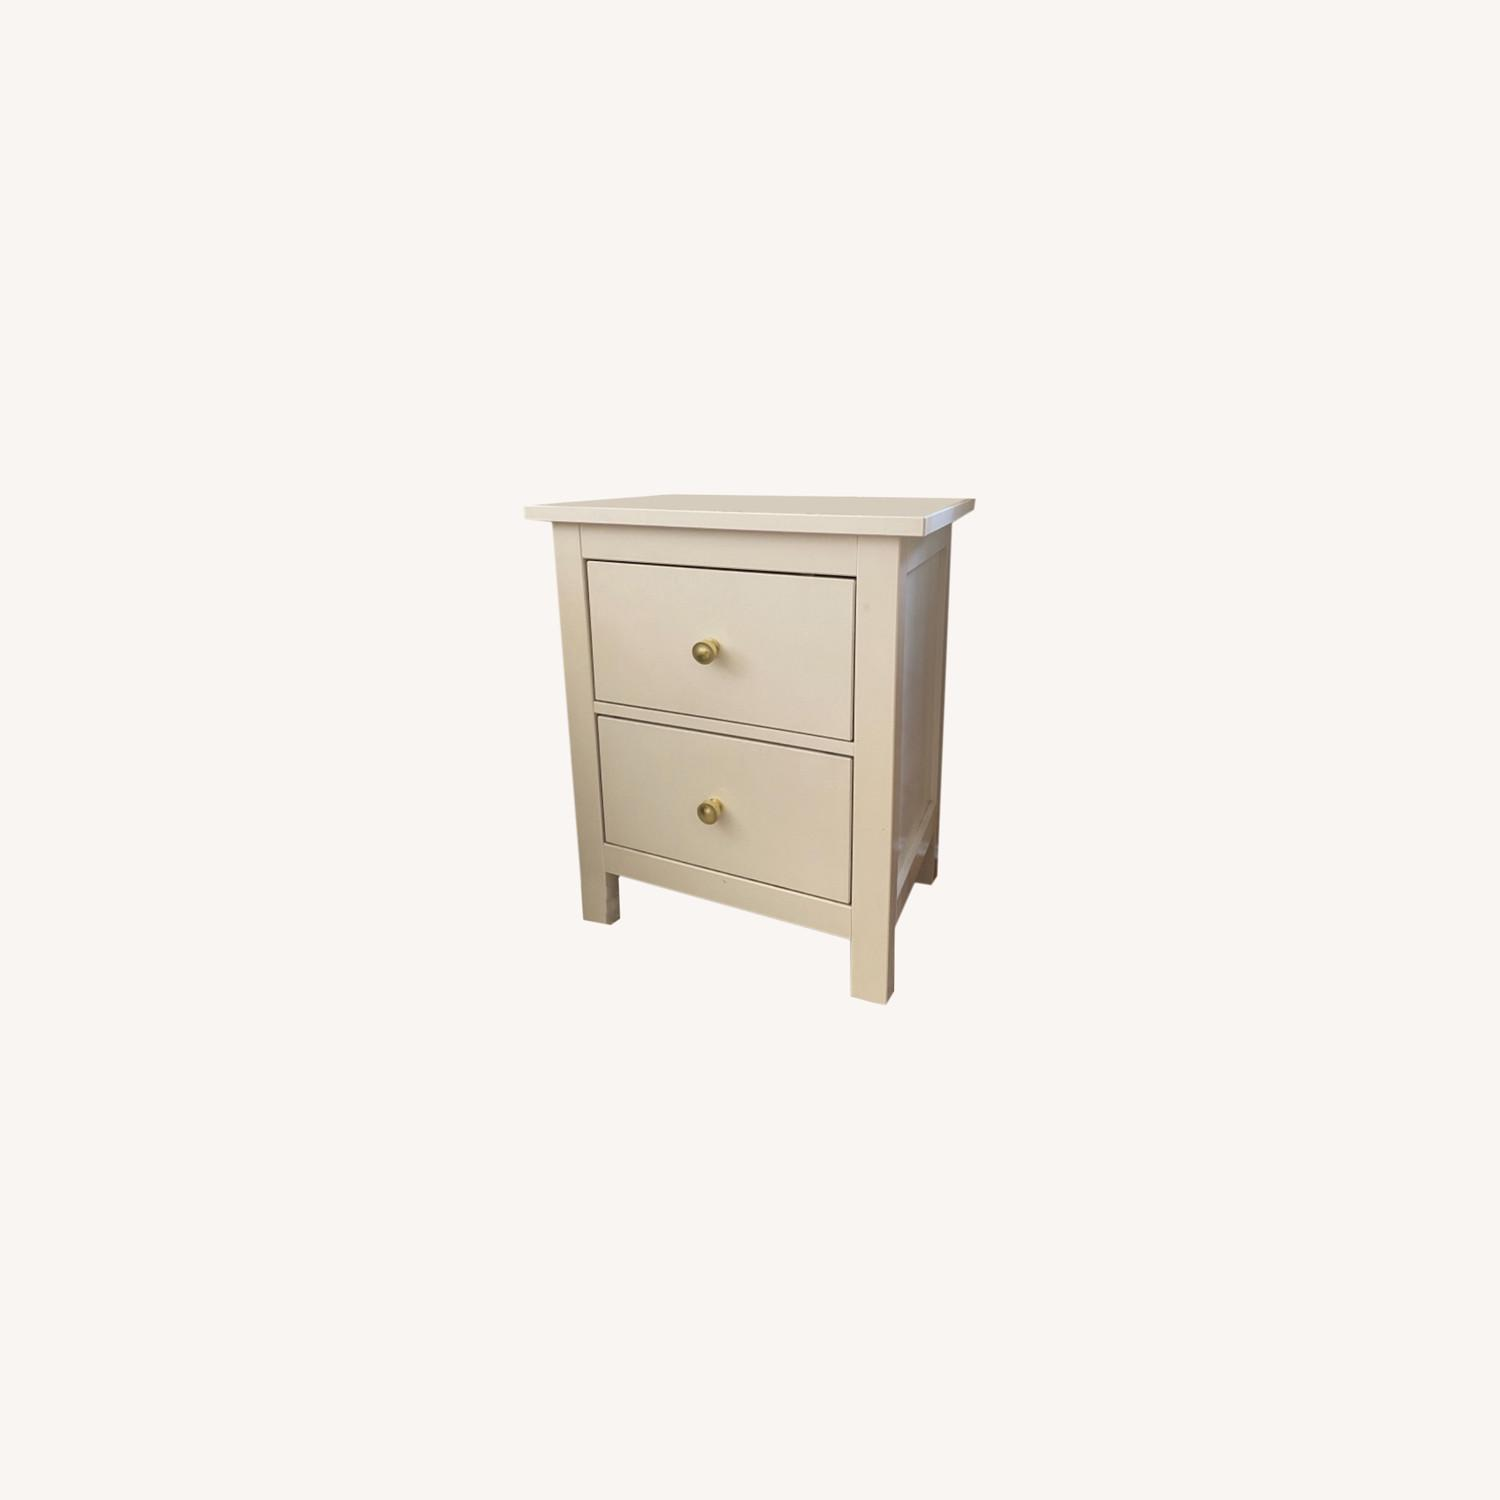 IKEA Hemnes Nightstand with Gold Knobs - image-0